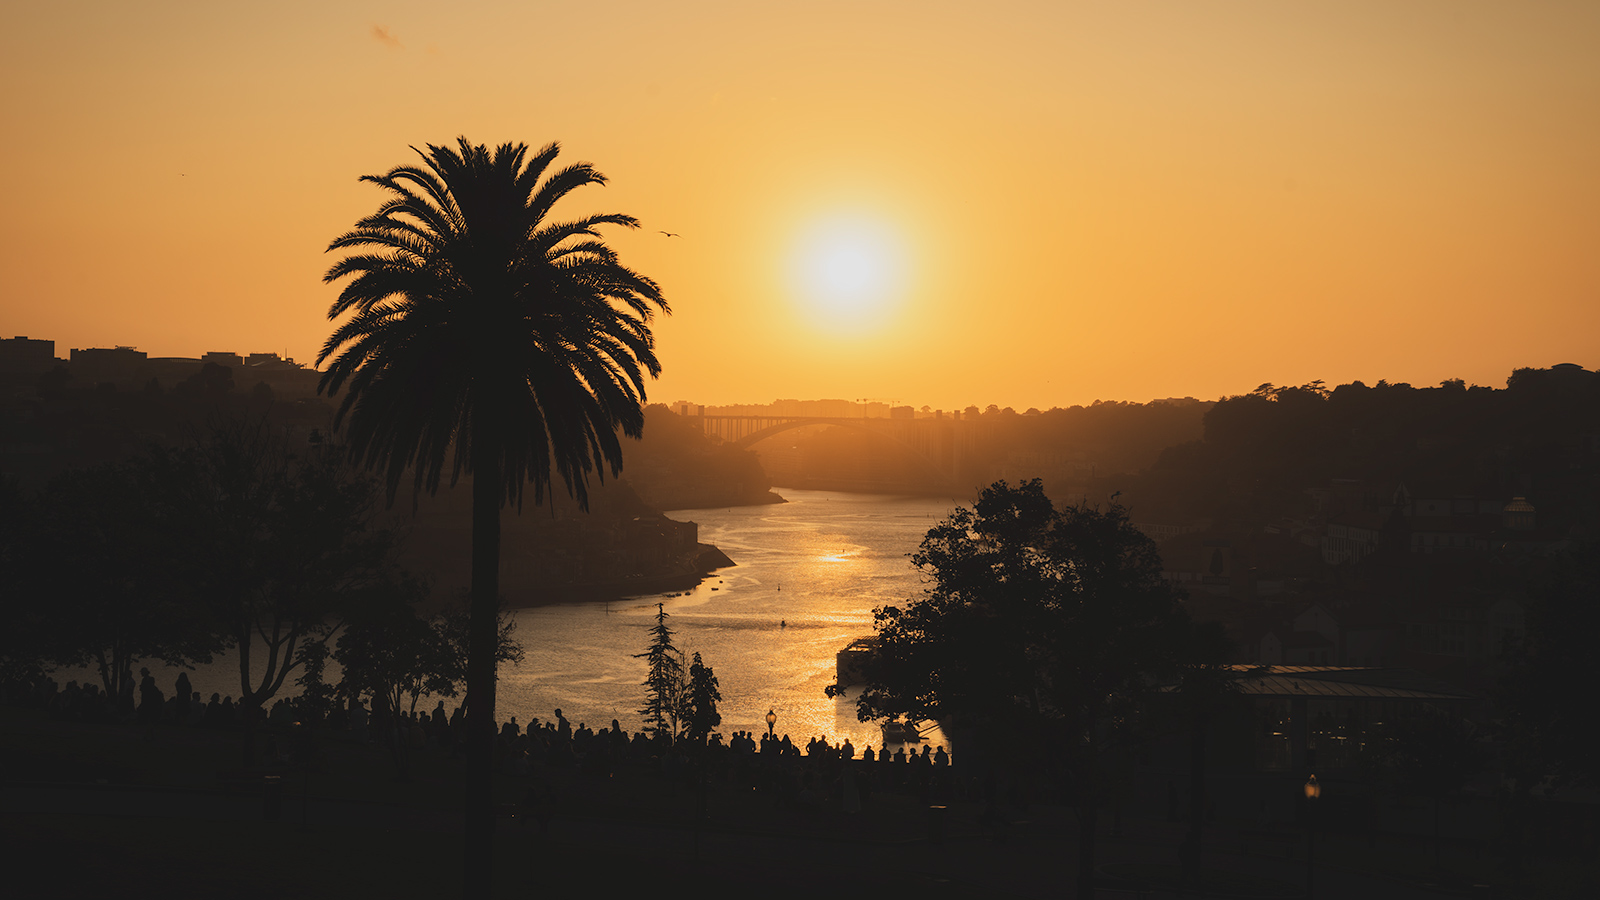 Sunset over Douro River viewed from Miradouro da Serra do Pilar, Porto, Portugal